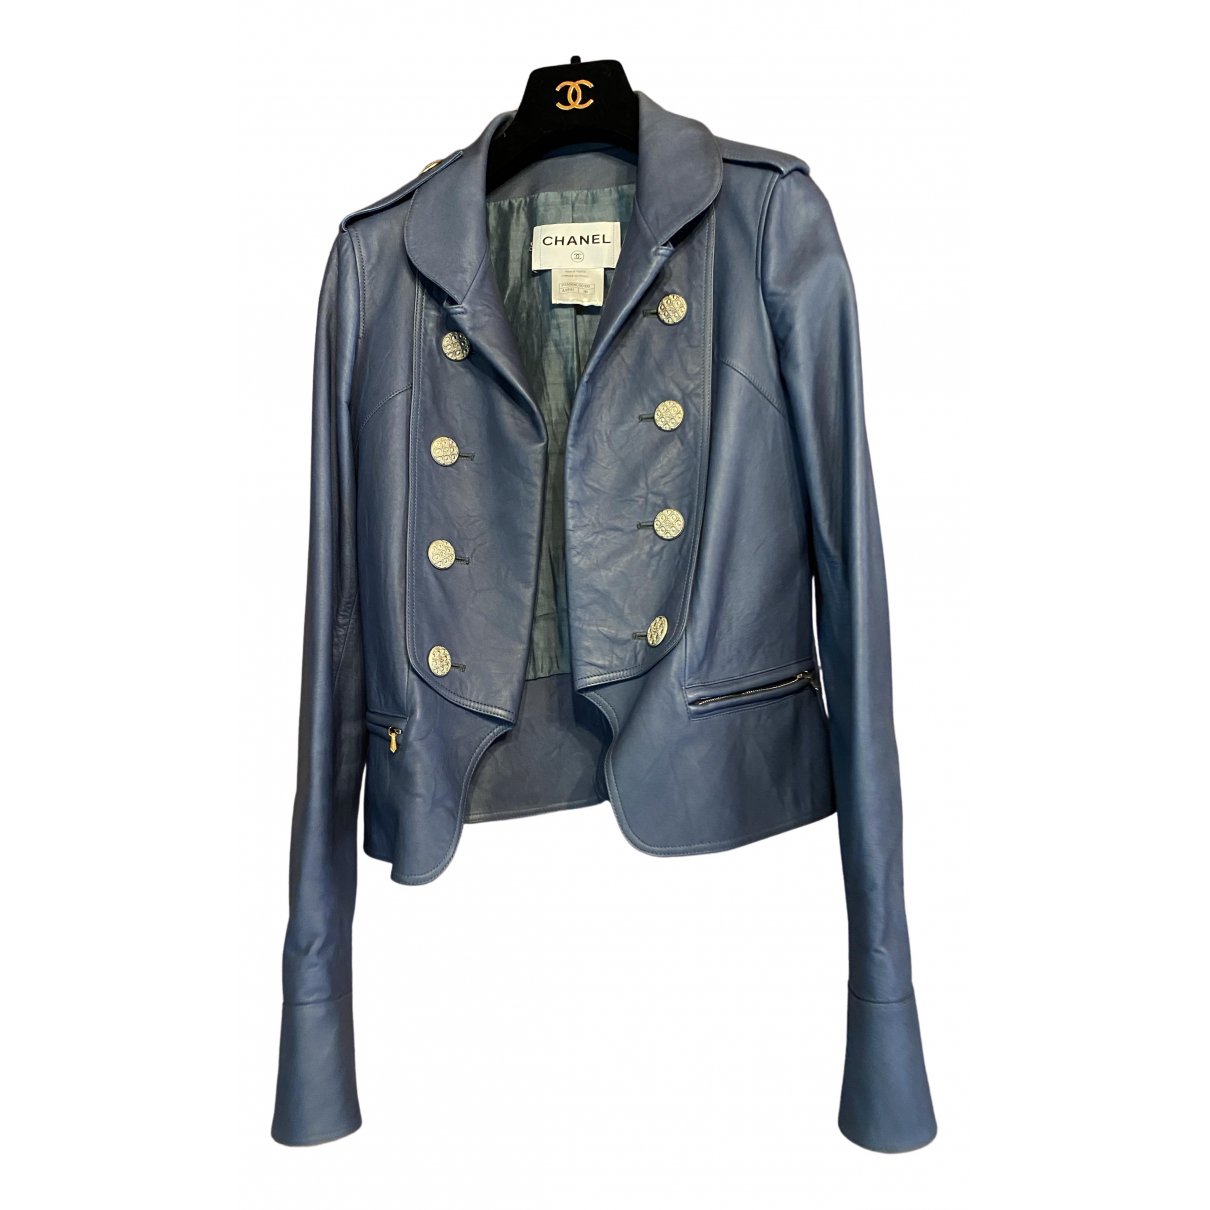 Chanel \N Leather jacket for Women 36 FR